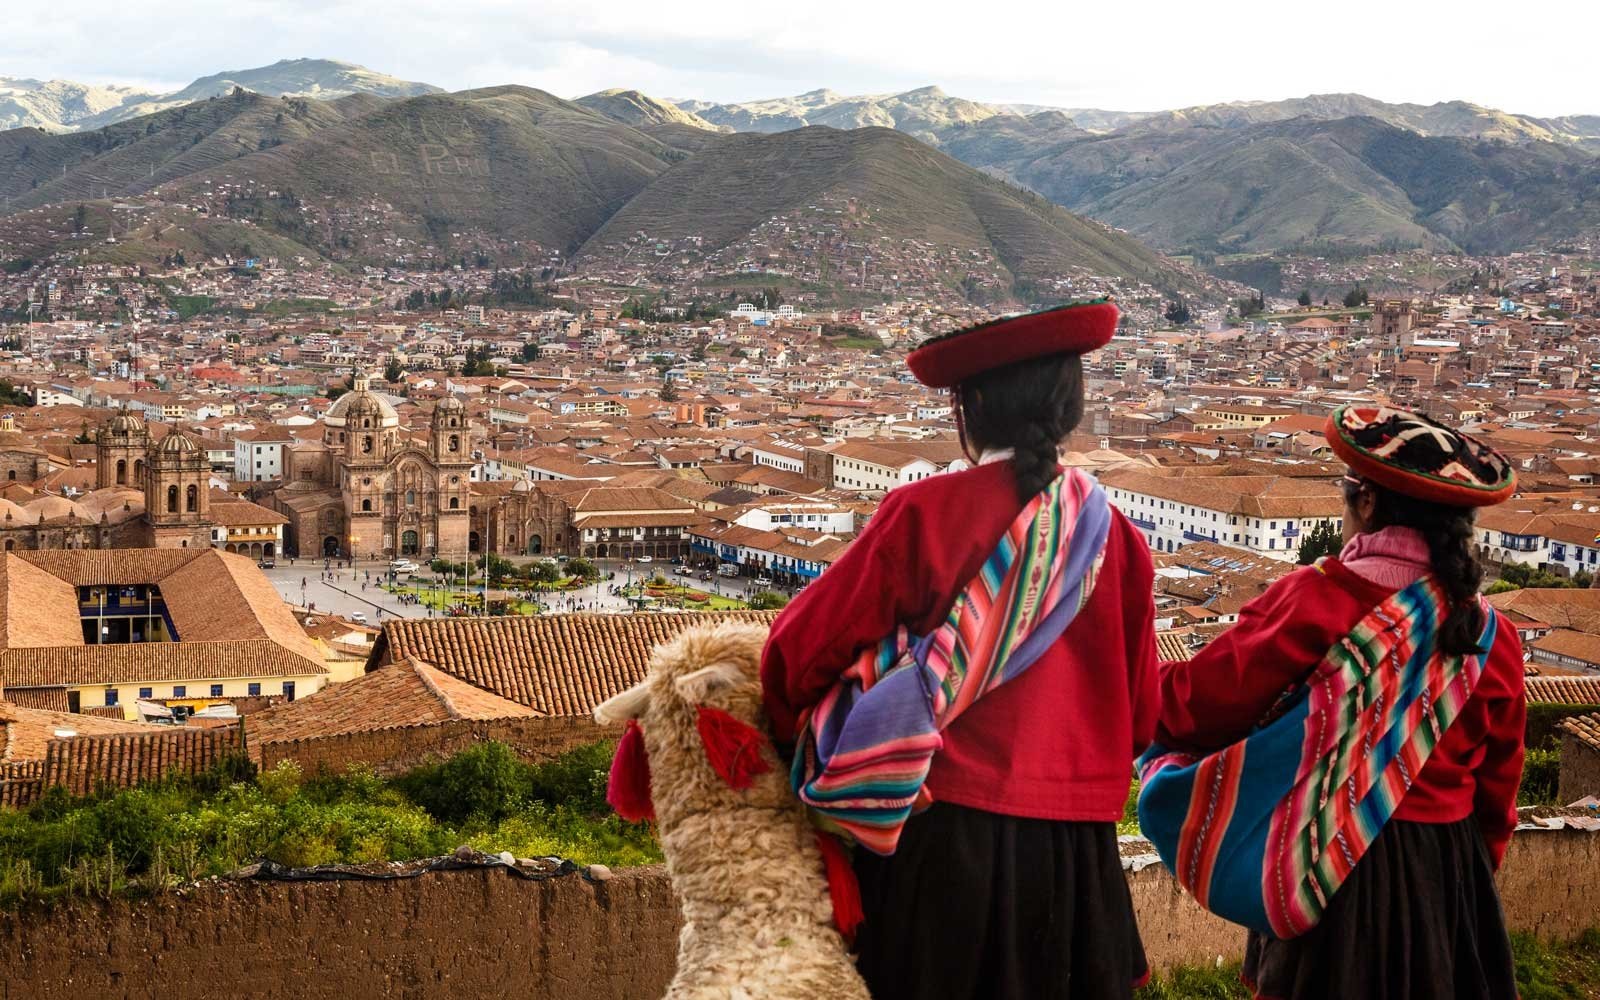 View to Plaza de Armas, Cuzco, Peru